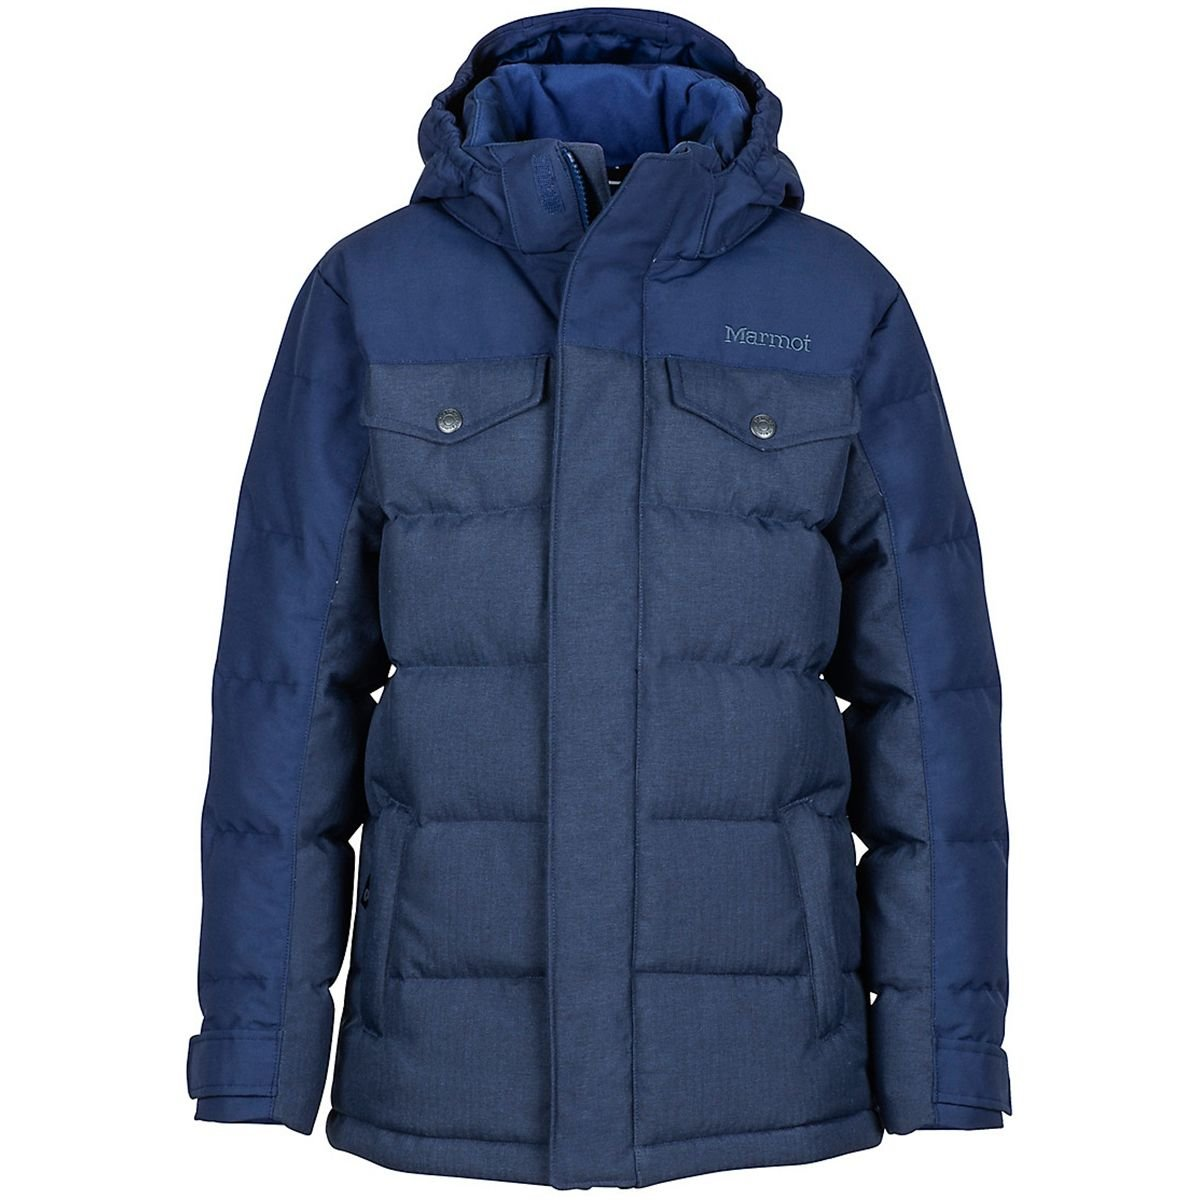 Marmot Fordham Down Jacket - Boys' Arctic Navy, L